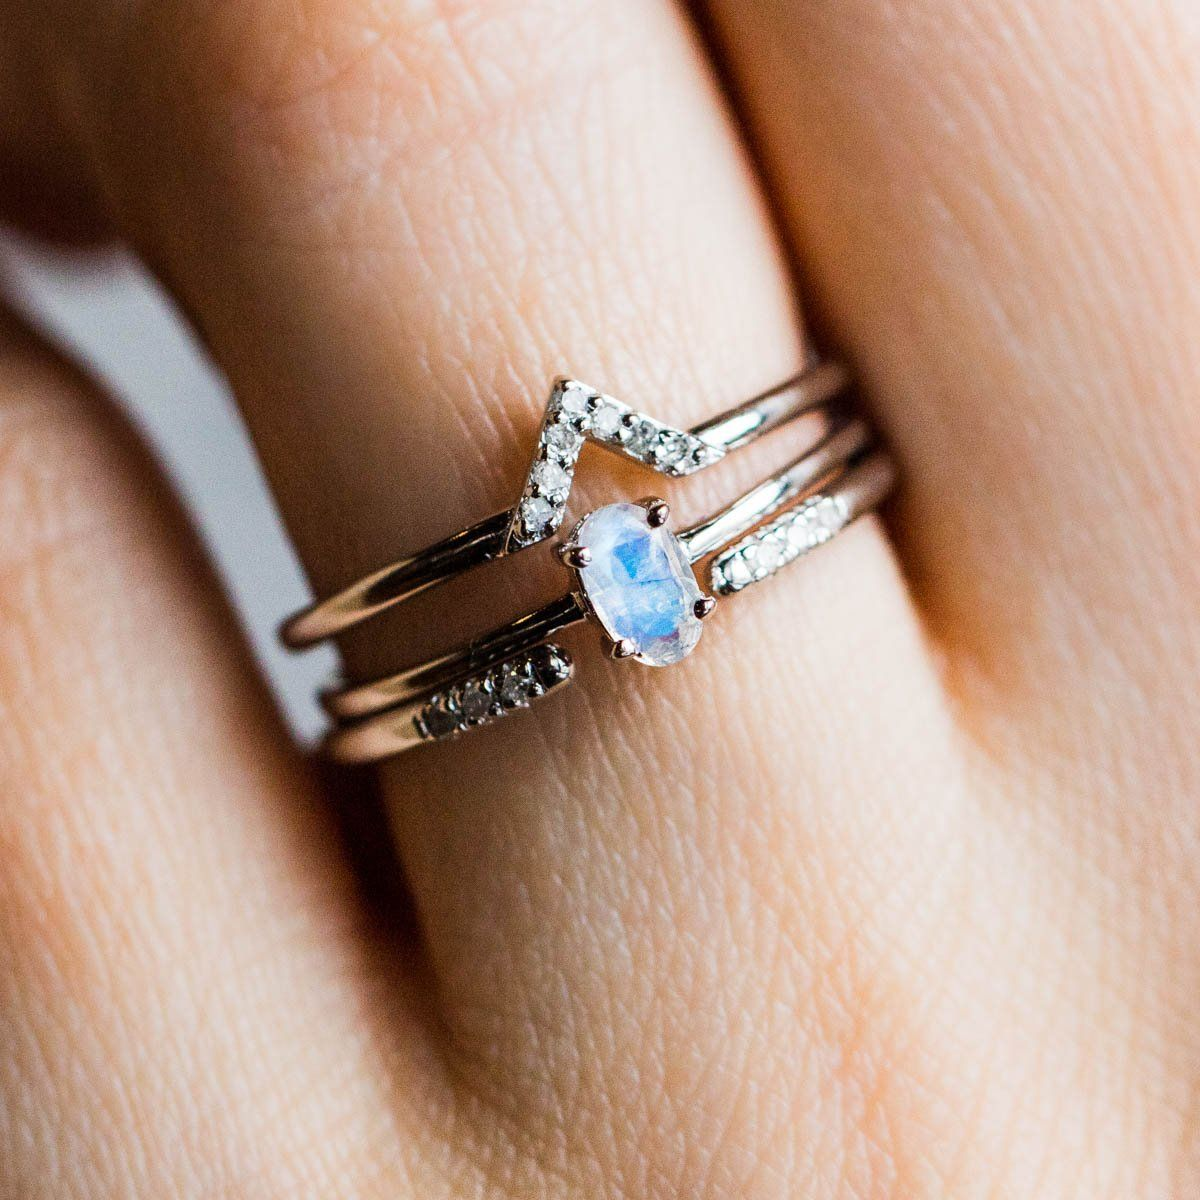 9e7c3380536d2f Diamond & Moonstone Stacking Ring Set in Silver - rings - Carrie Elizabeth  Jewelry local eclectic